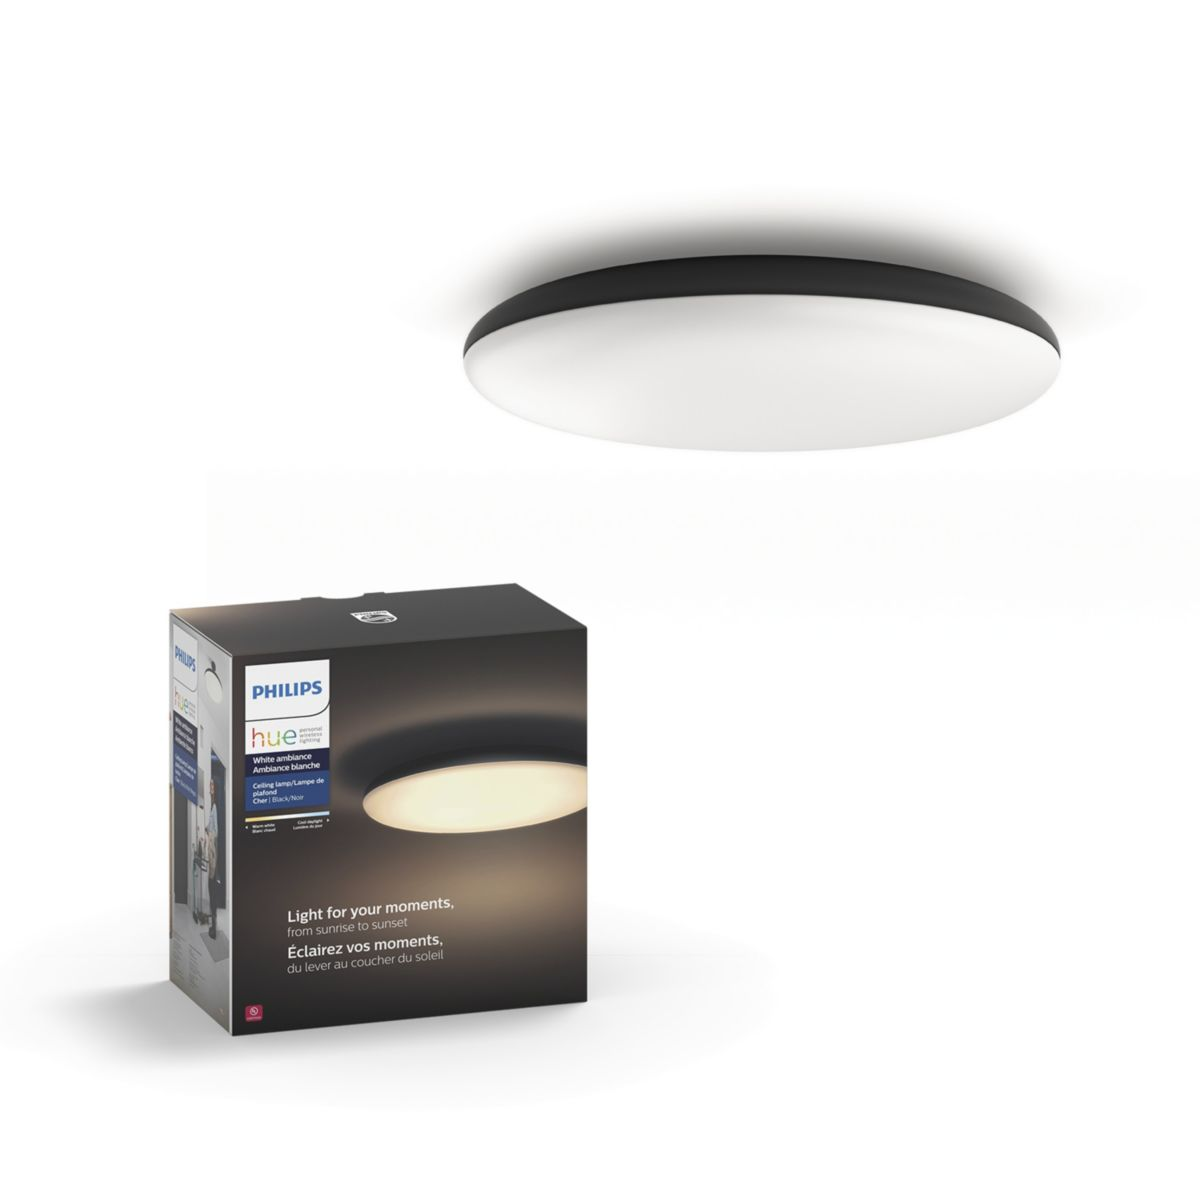 Philips Lampen Plafond Buy The Philips Hue White Ambiance Cher Ceiling Light 4096730u7 Cher Ceiling Light